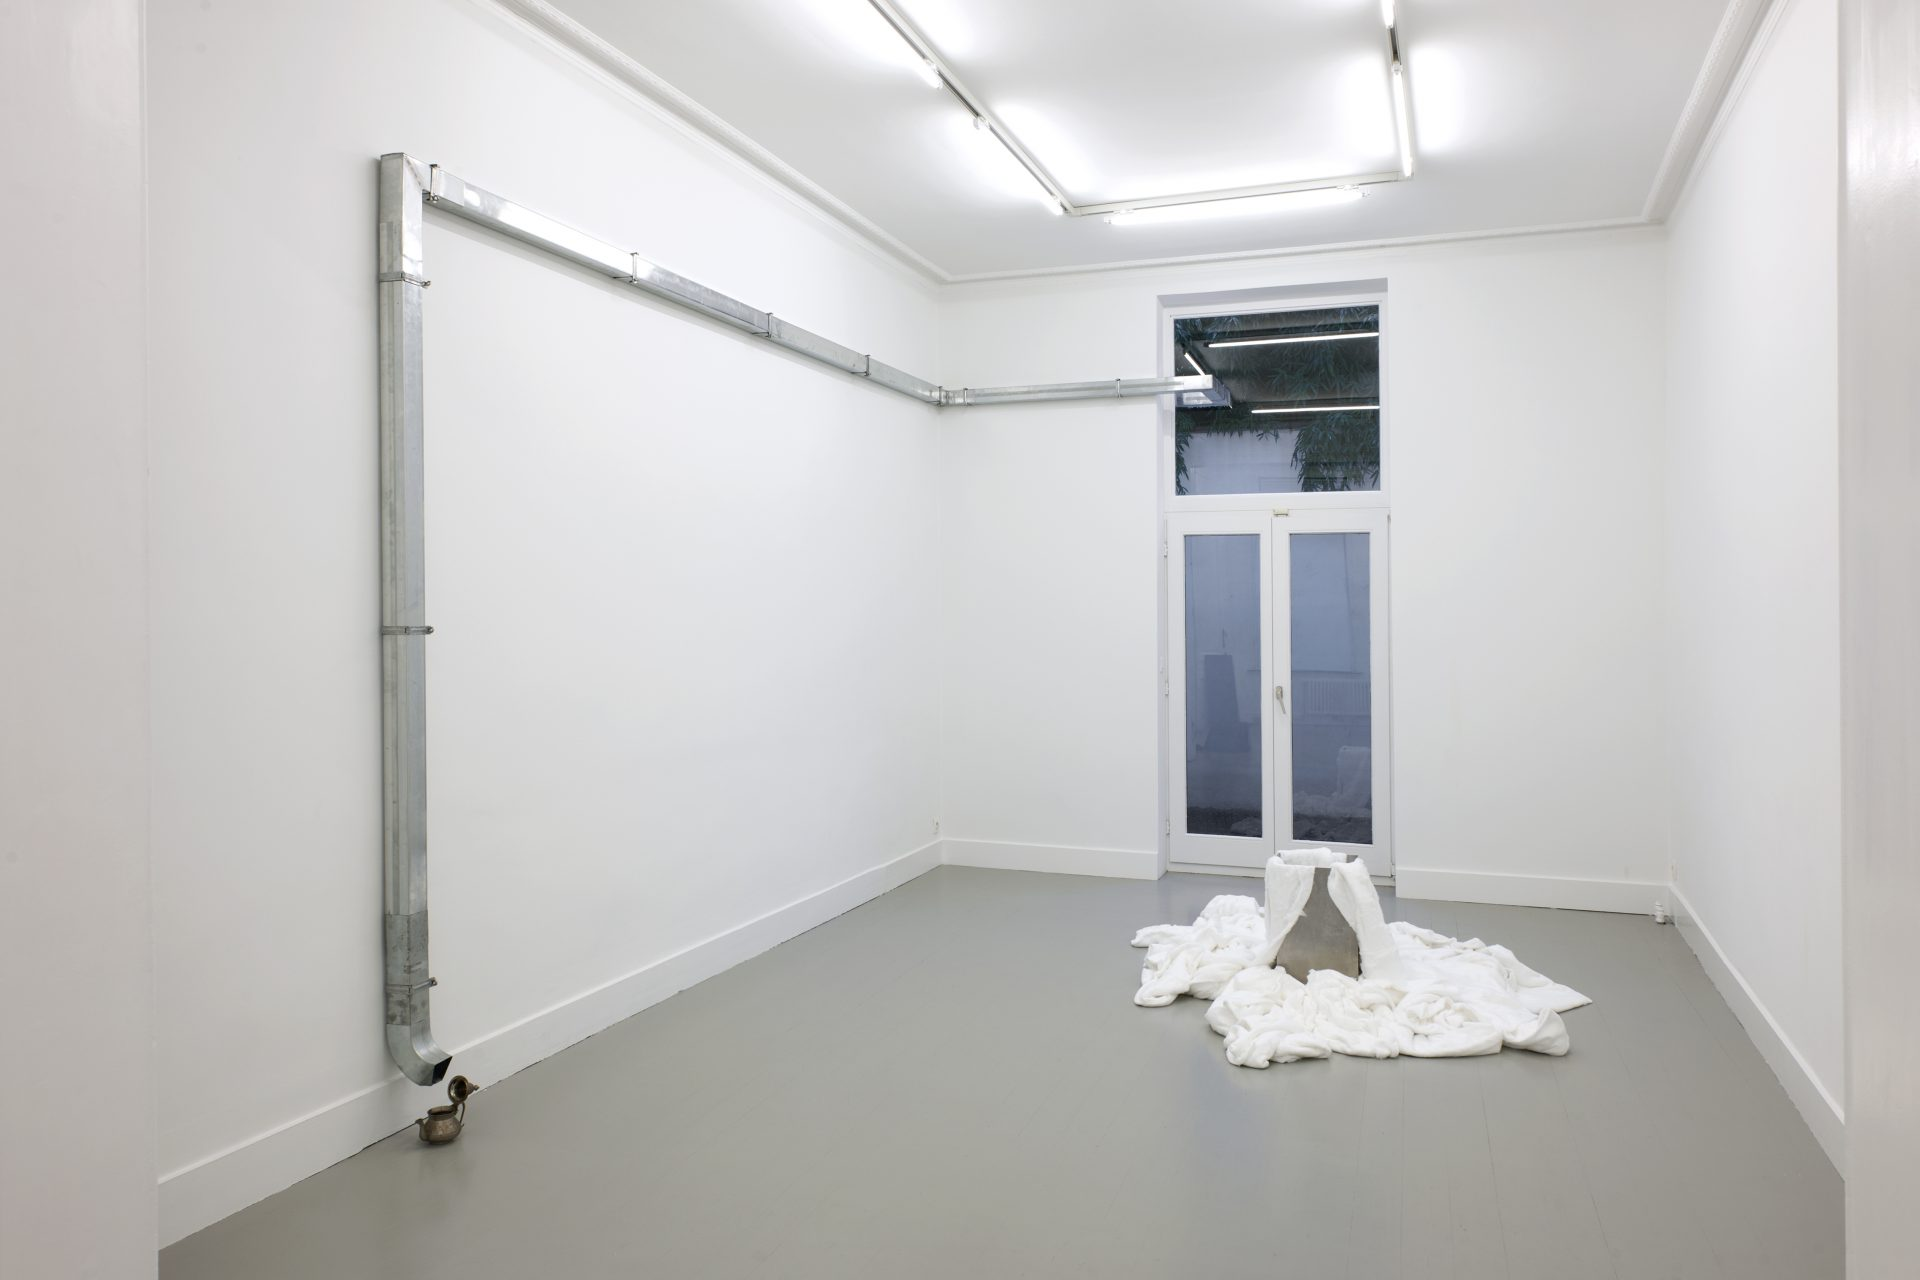 Installation view at Jan Mot, 2020